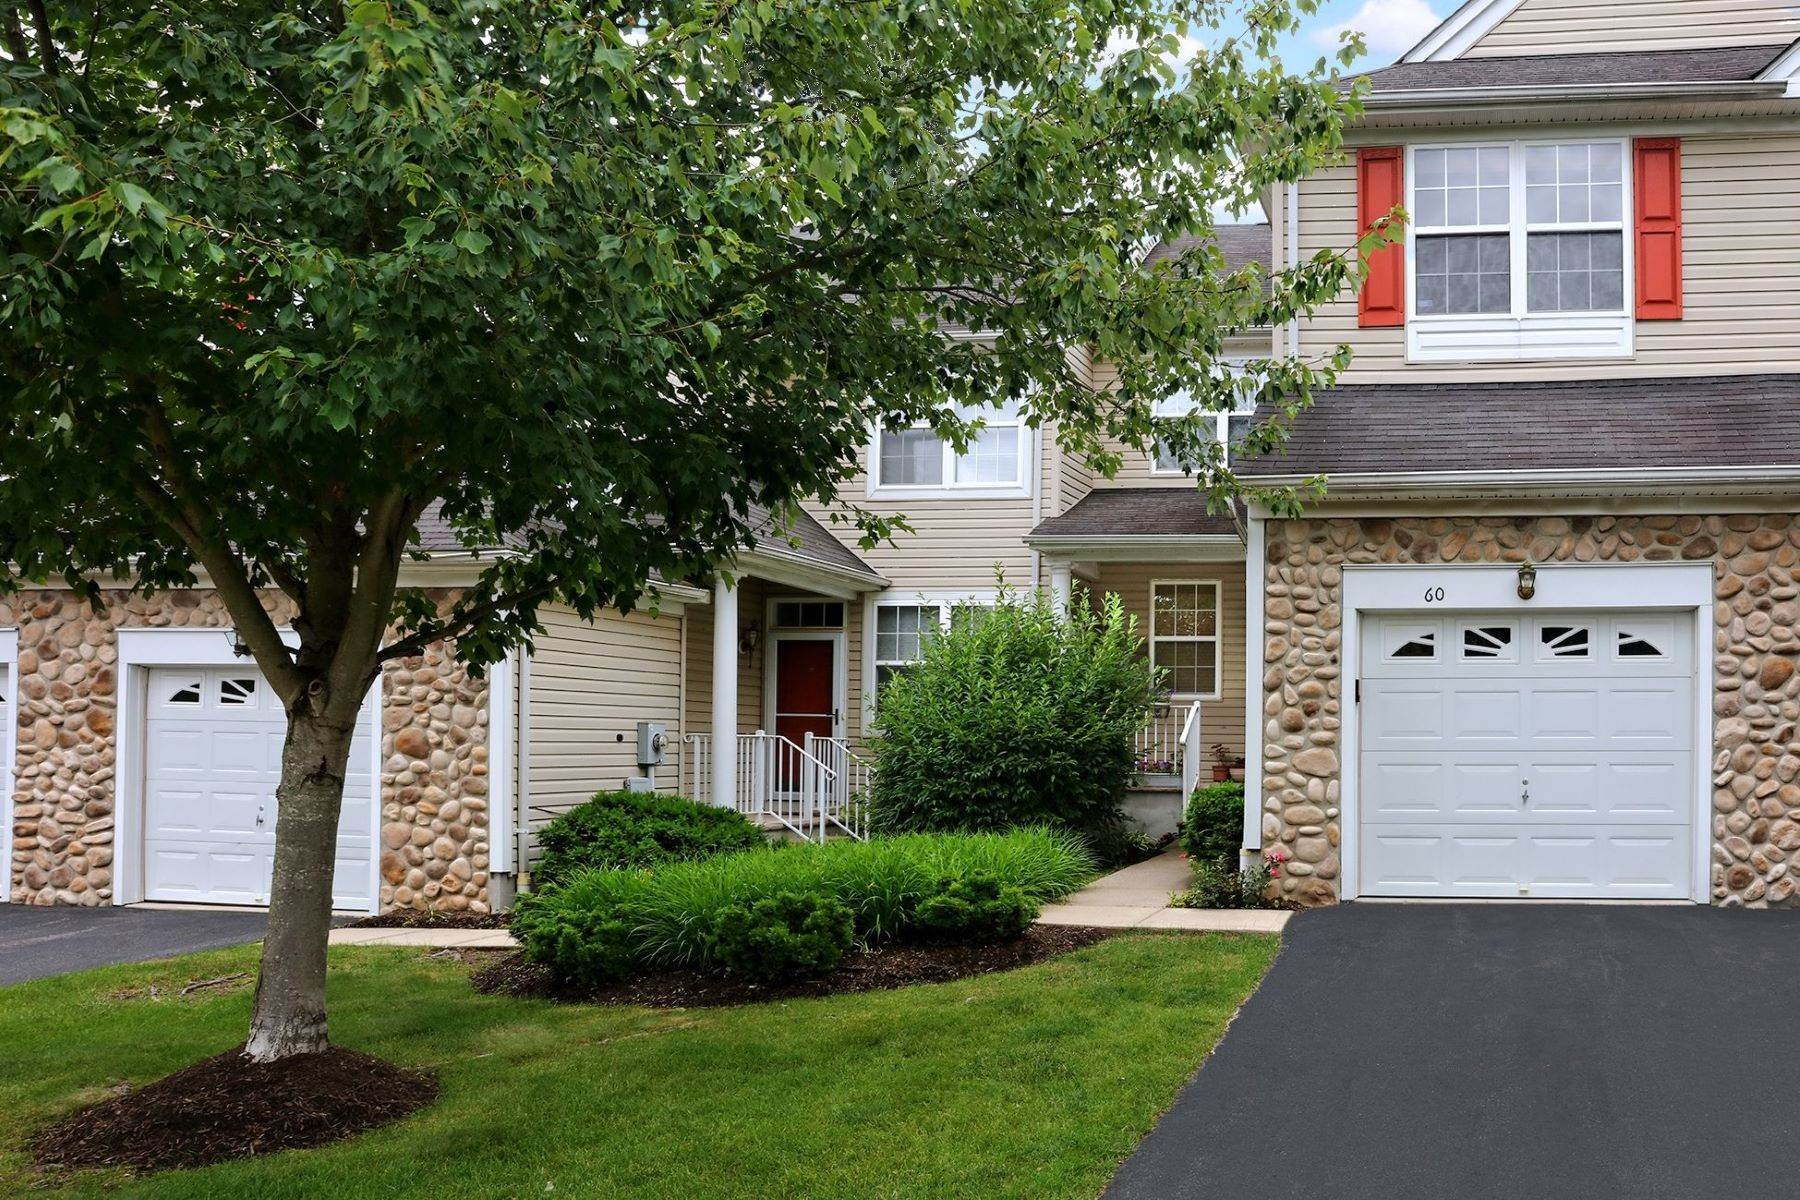 townhouses for Sale at Abundance of Natural Light 60 Scarlet Oak Drive, Princeton, New Jersey 08540 United States